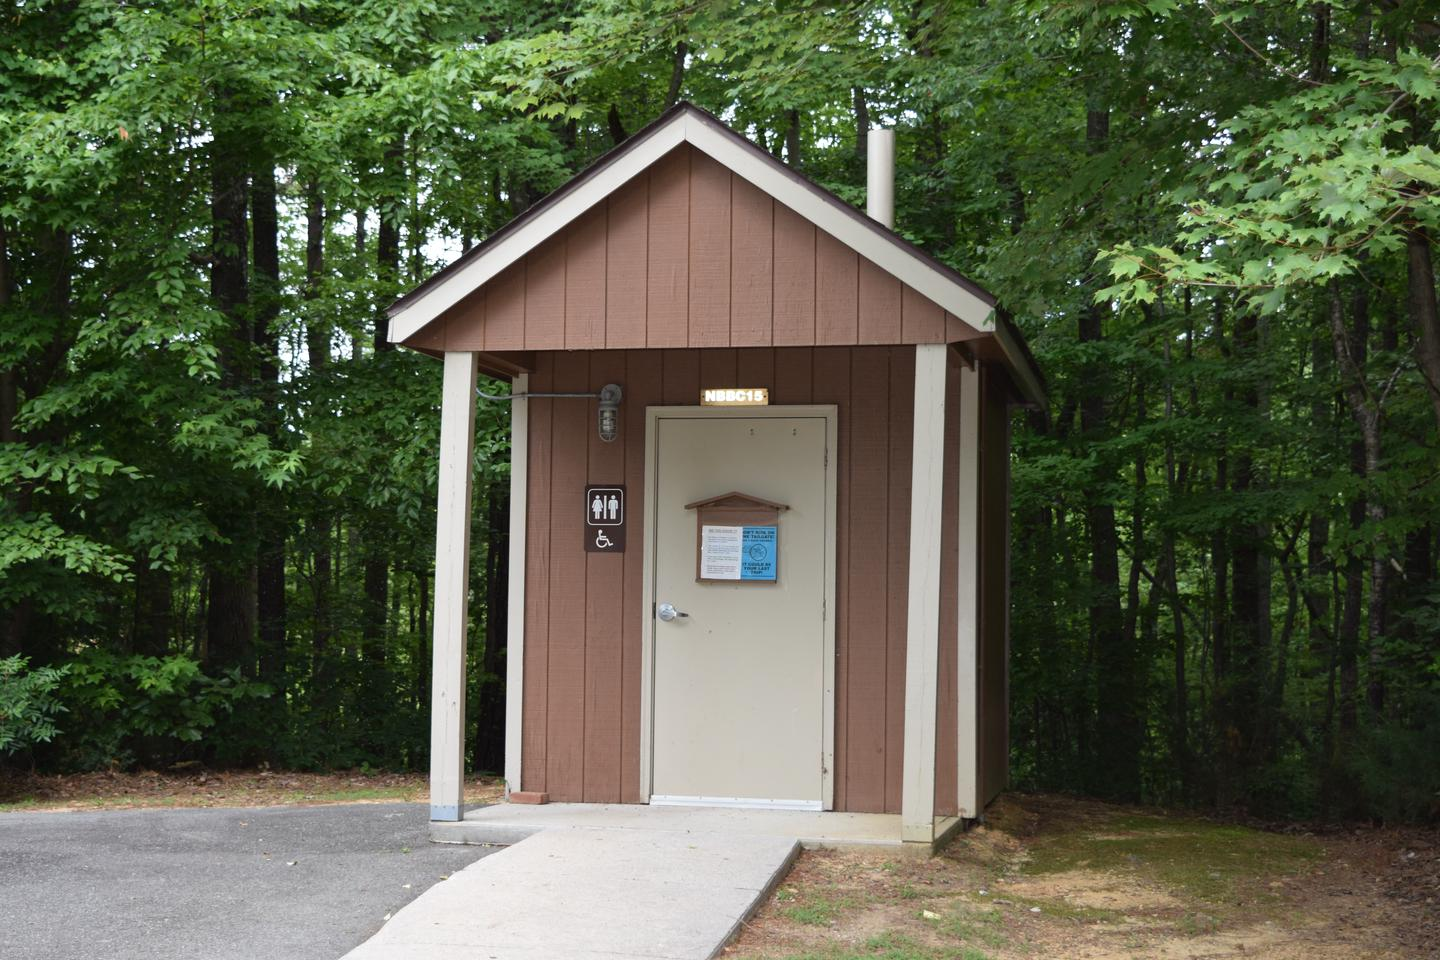 Mays Chapel Group Camping Area Vault ToiletWelcome to Mays Chapel Group Camping Area! This is a picture of the vault toilet located inside the group camping area. This is the only vault toilet in the area. There are other restrooms with flush toilets available around the campground as well as restrooms with showers in them.